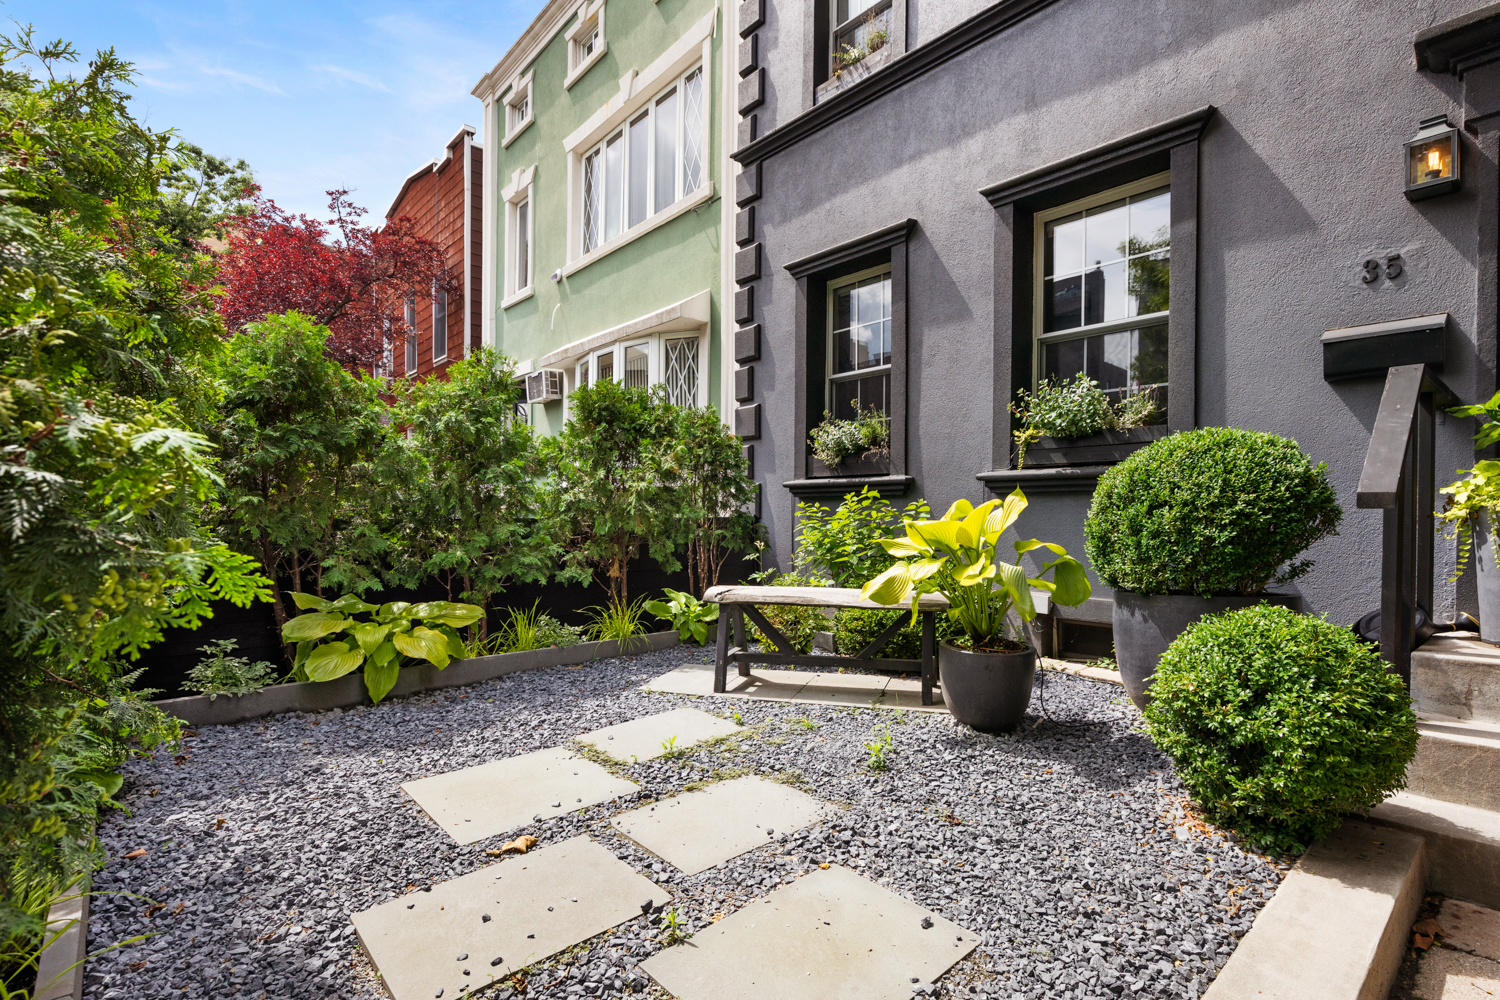 35DevoeStreet-EastWilliamsburgNewYork_Daniel_Fried_DouglasElliman_Photography_80616530_high_res.jpg